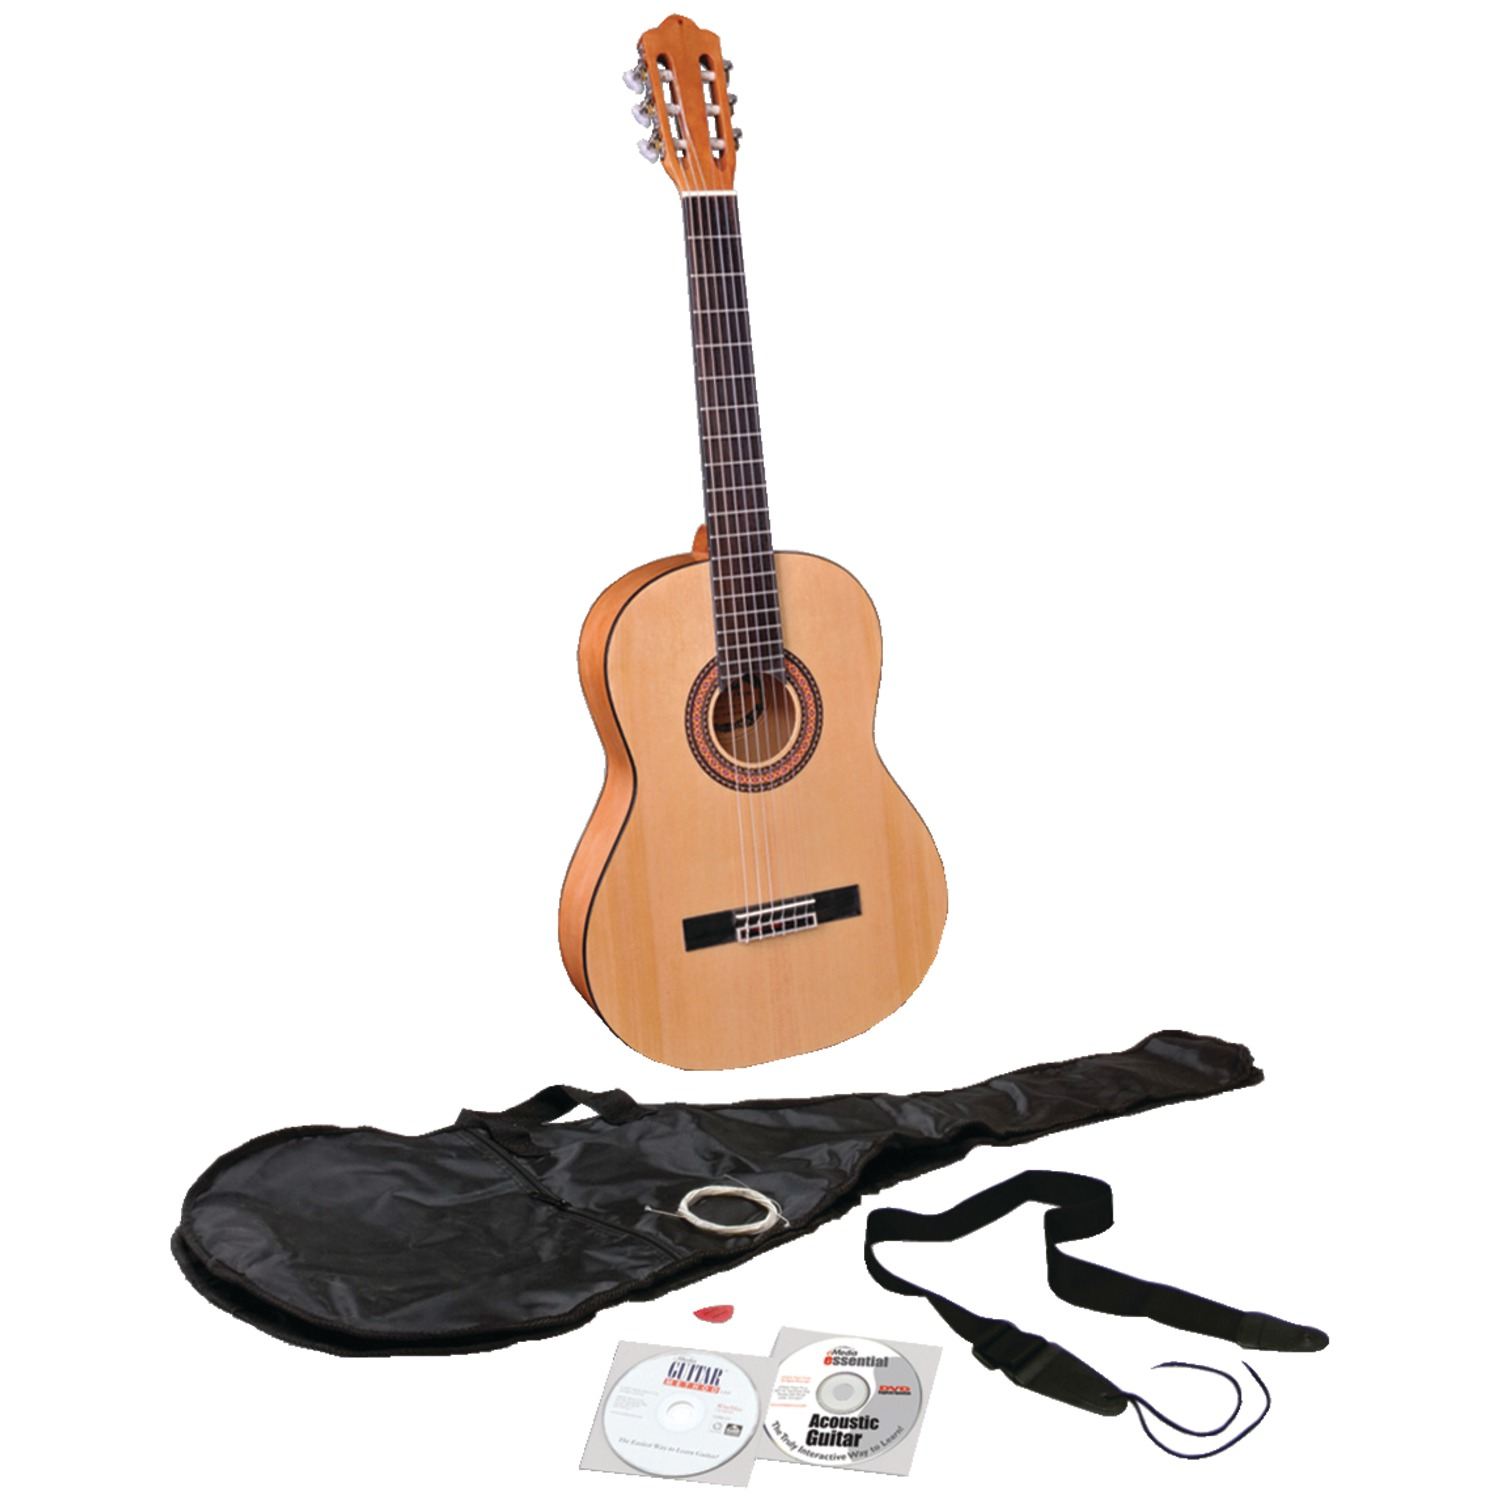 eMedia Music EG07107 Teach Yourself Classical Guitar Pack V5 with Full-Size Guitar by Emedia Music